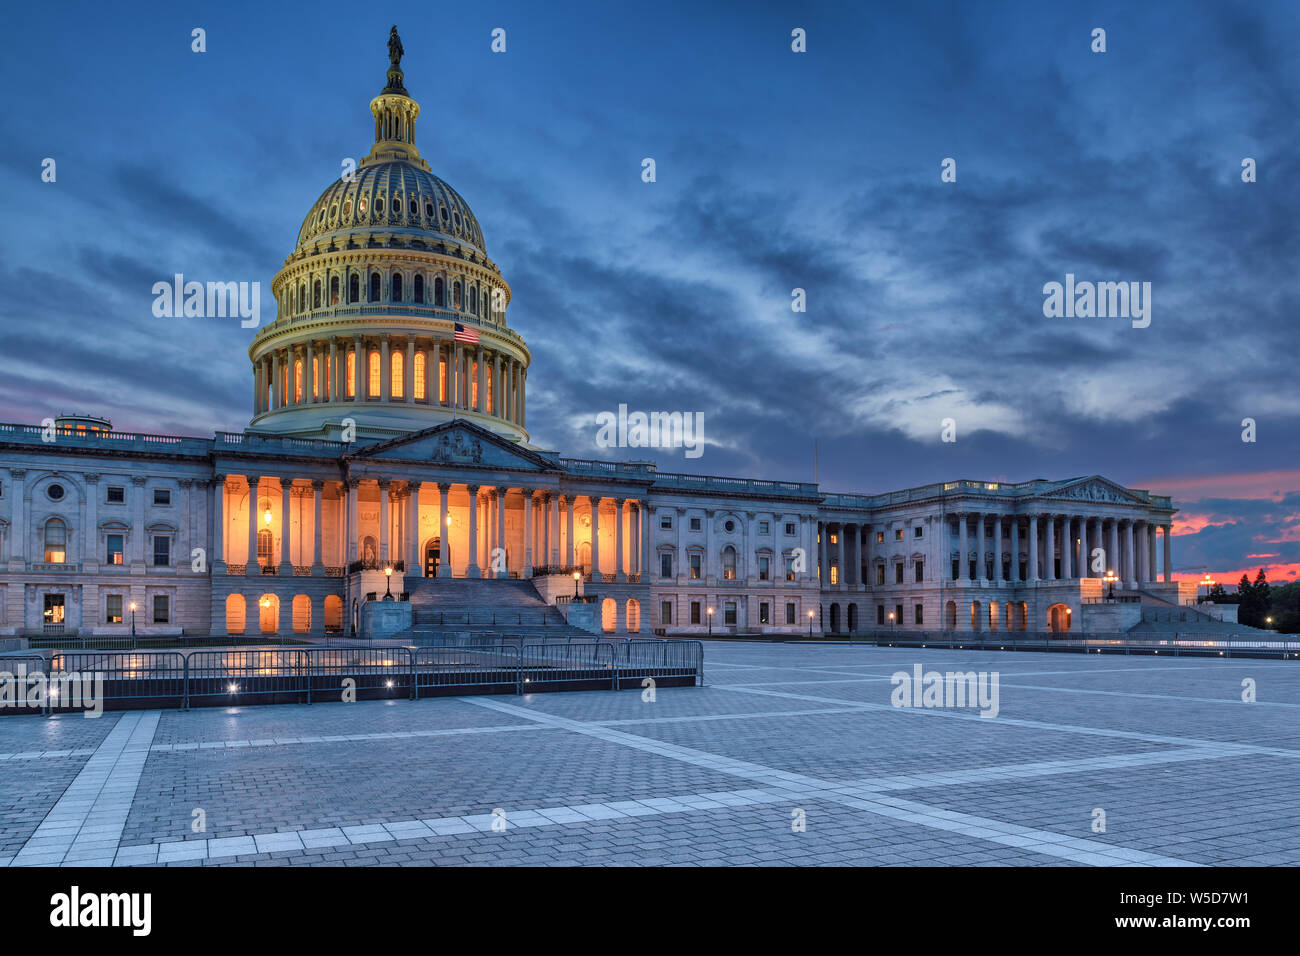 Le United States Capitol building at night, Washington DC, USA. Banque D'Images